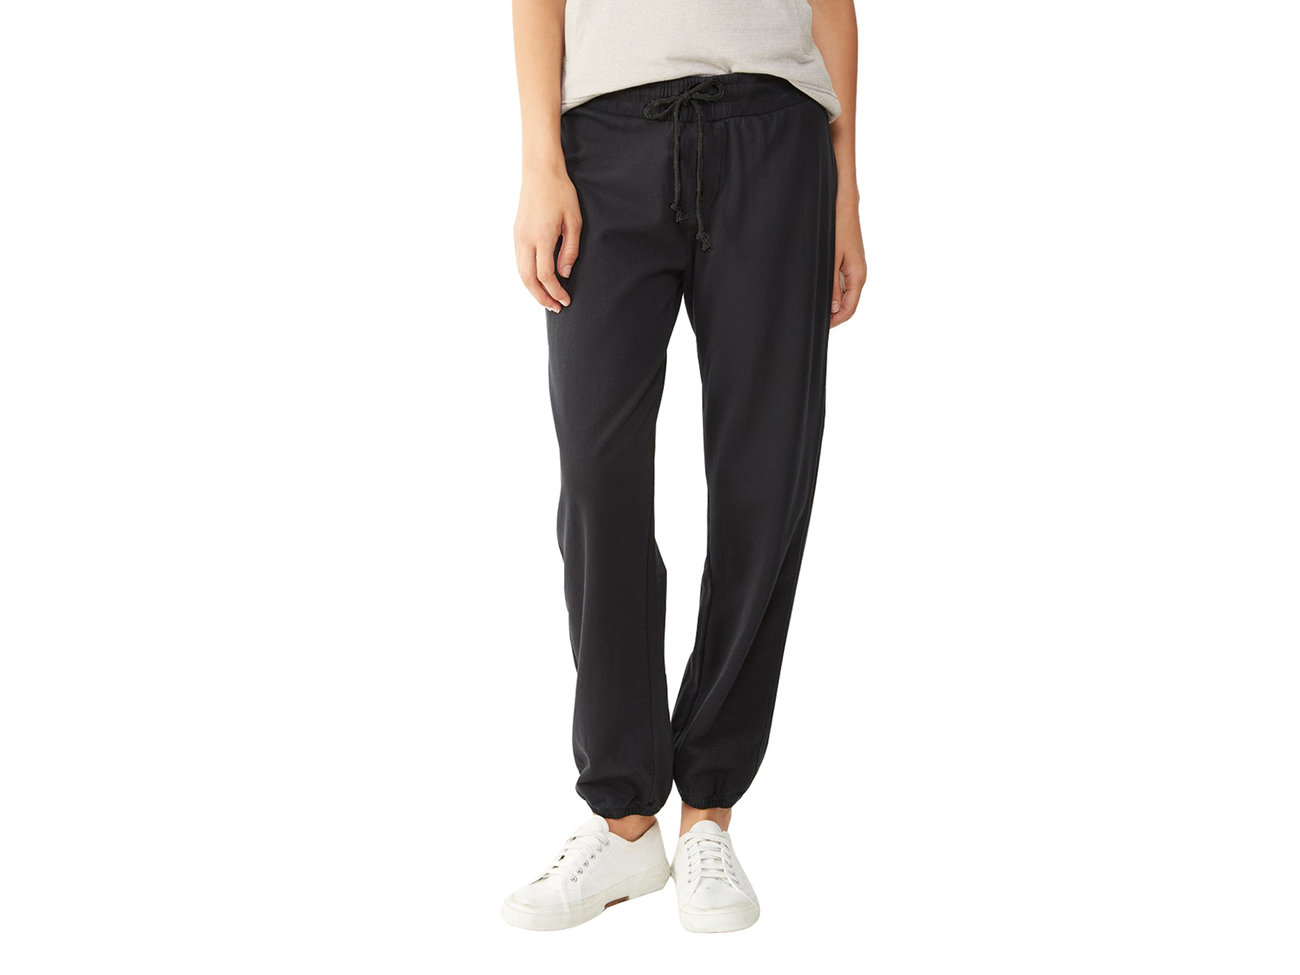 alternative-apparel-sweatpants-ecogiftguide1215.jpg